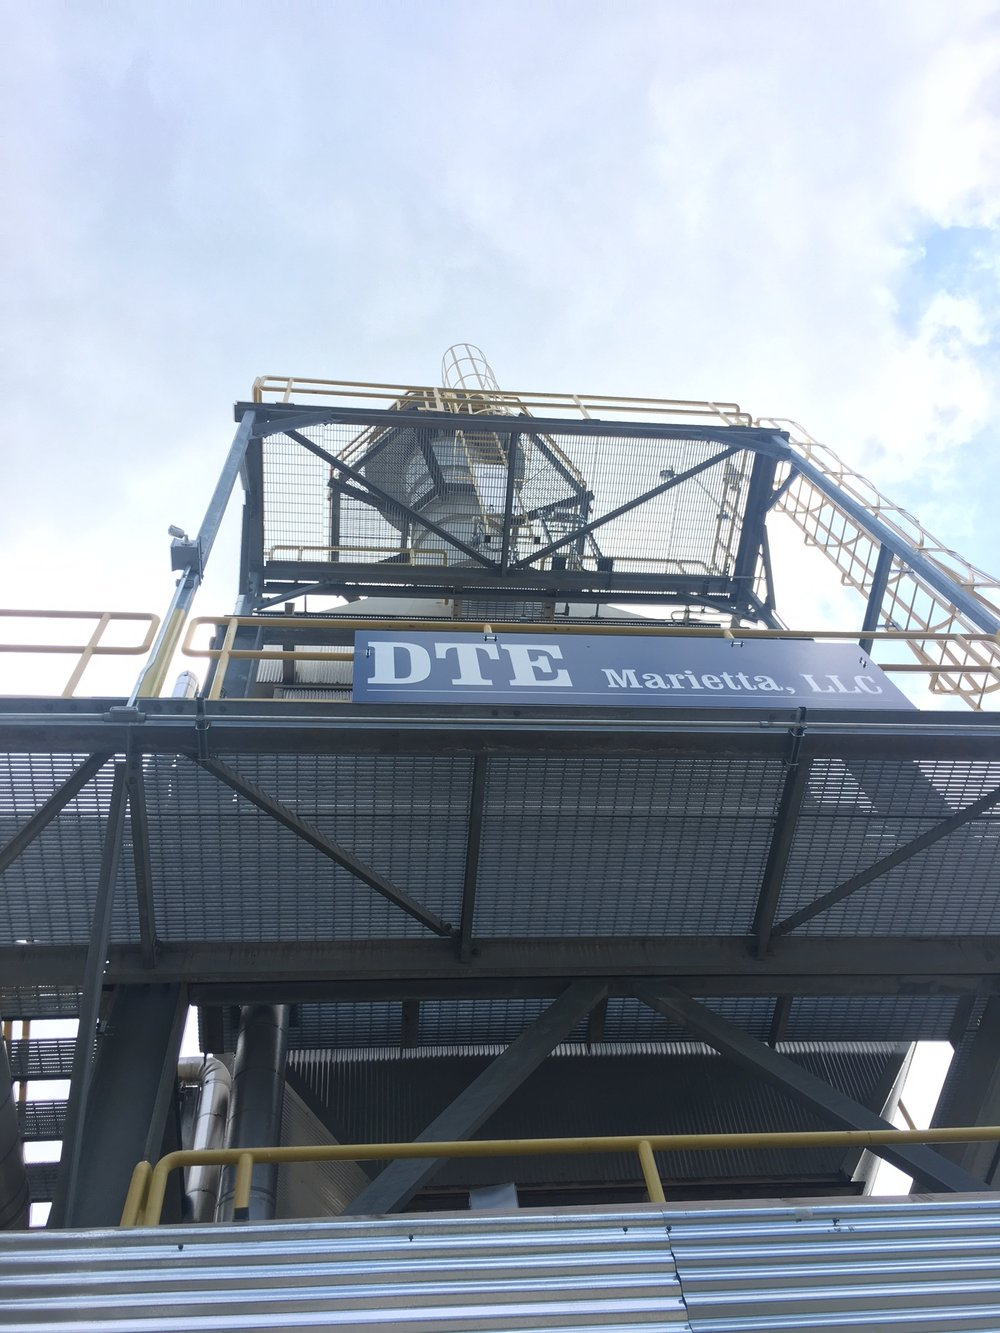 DTE Energy Services owns and operates the combined heat & power facility, while Solvay Specialty Polymers purchases and provides the fuel required to operate the facility and produce the electricity and steam used to power Solvay's operations.